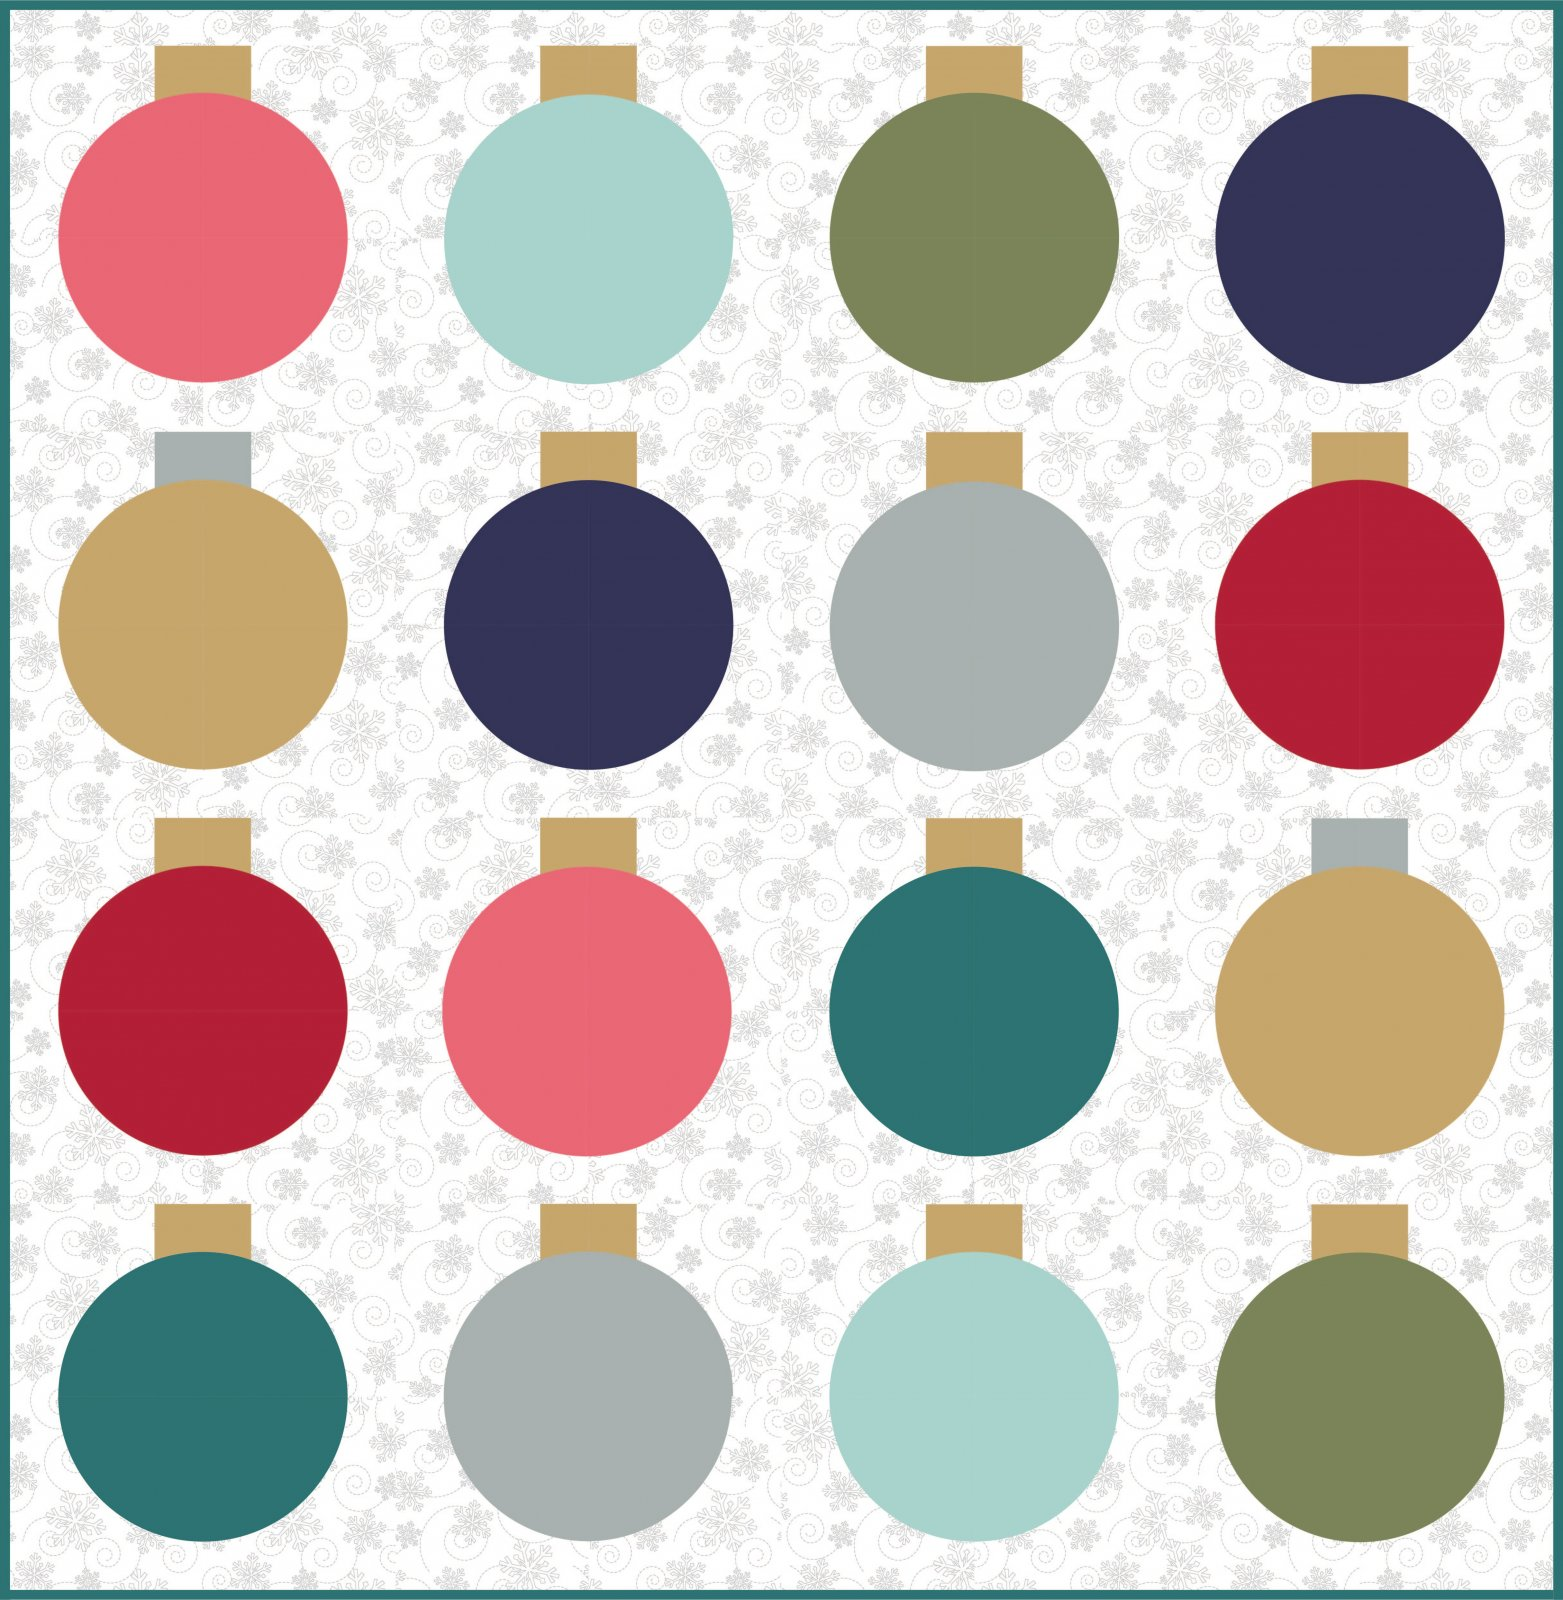 EESC-LOB114 - RETRO ORNAMENTS QUILT PATTERN BY LO & BEHOLD STITCHERY